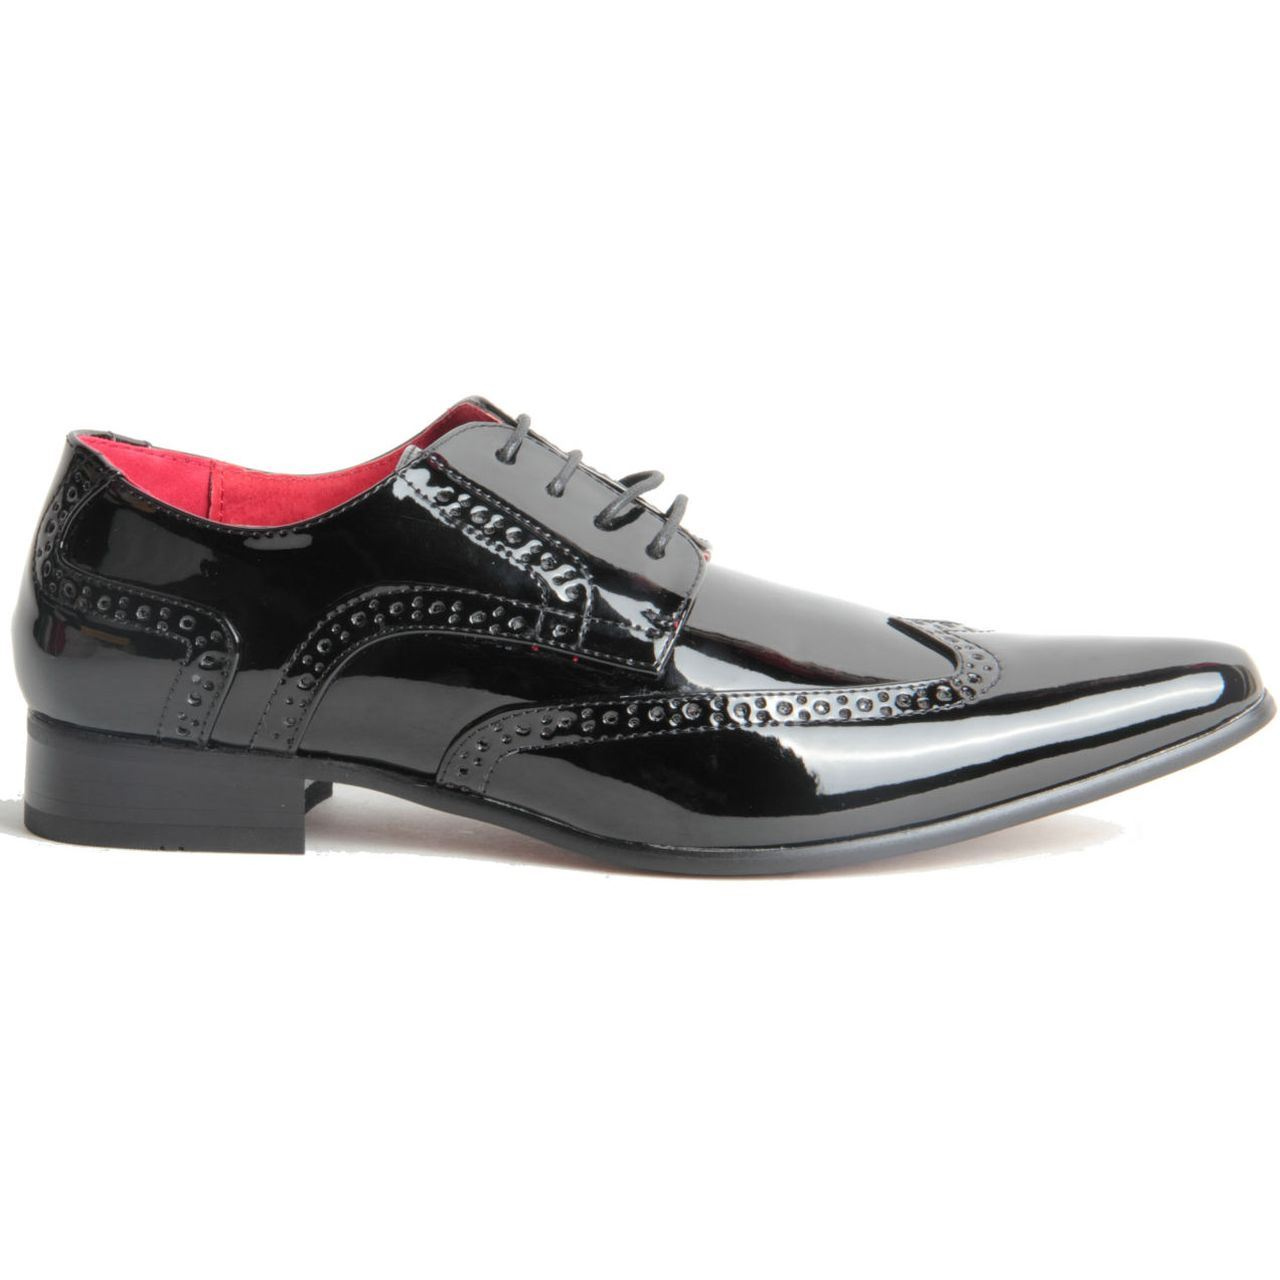 Mens-Smart-Lace-Up-Pointed-Toe-Brogue-Formal-Patent-Leather-Lined-Shoes thumbnail 3